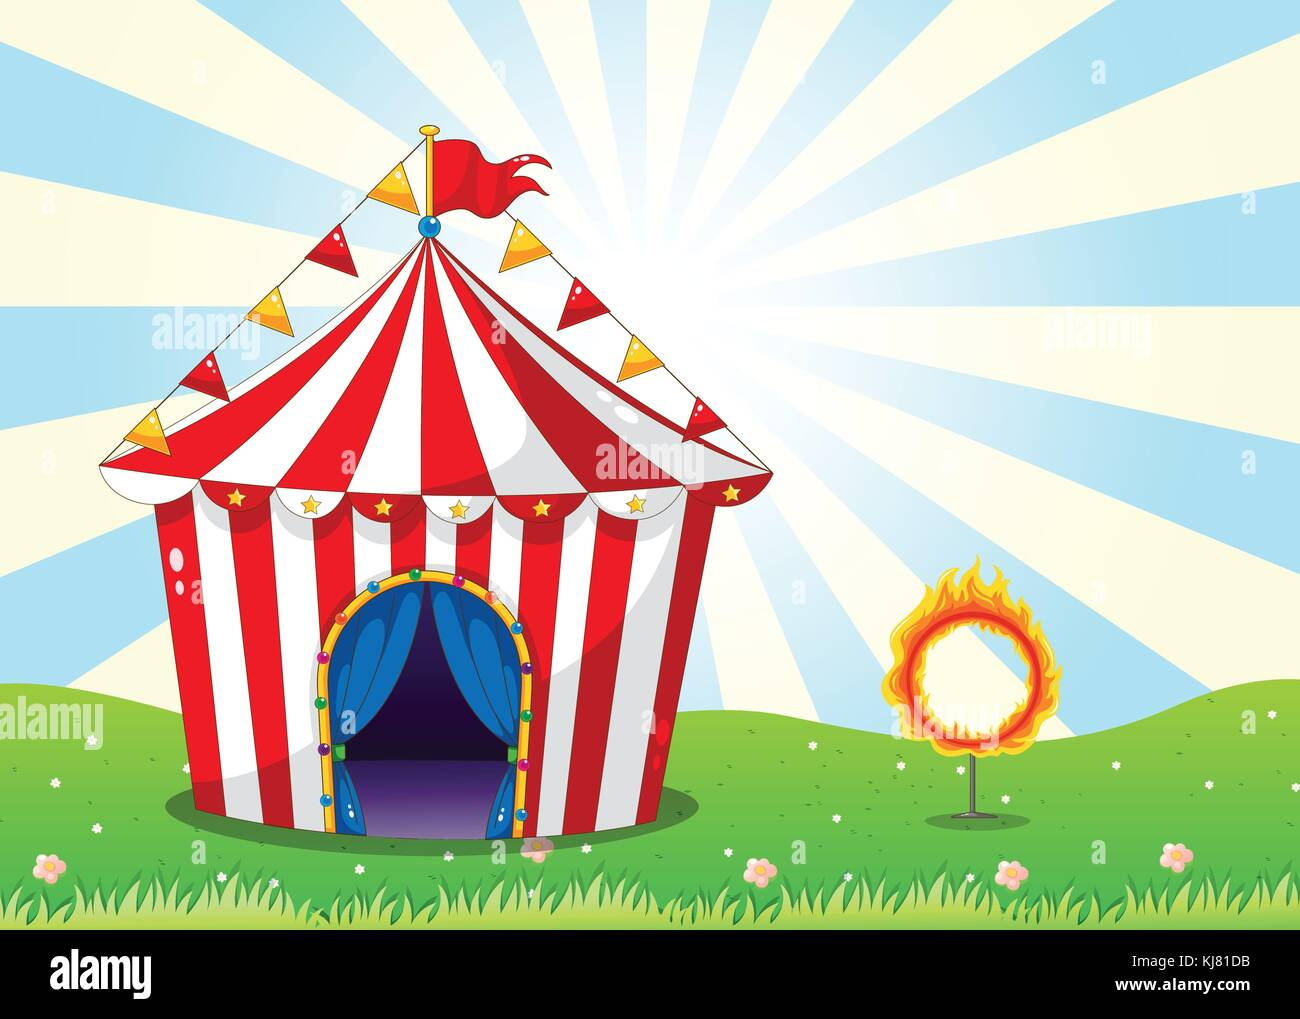 Illustration of a circus tent and the ring with fire - Stock Image